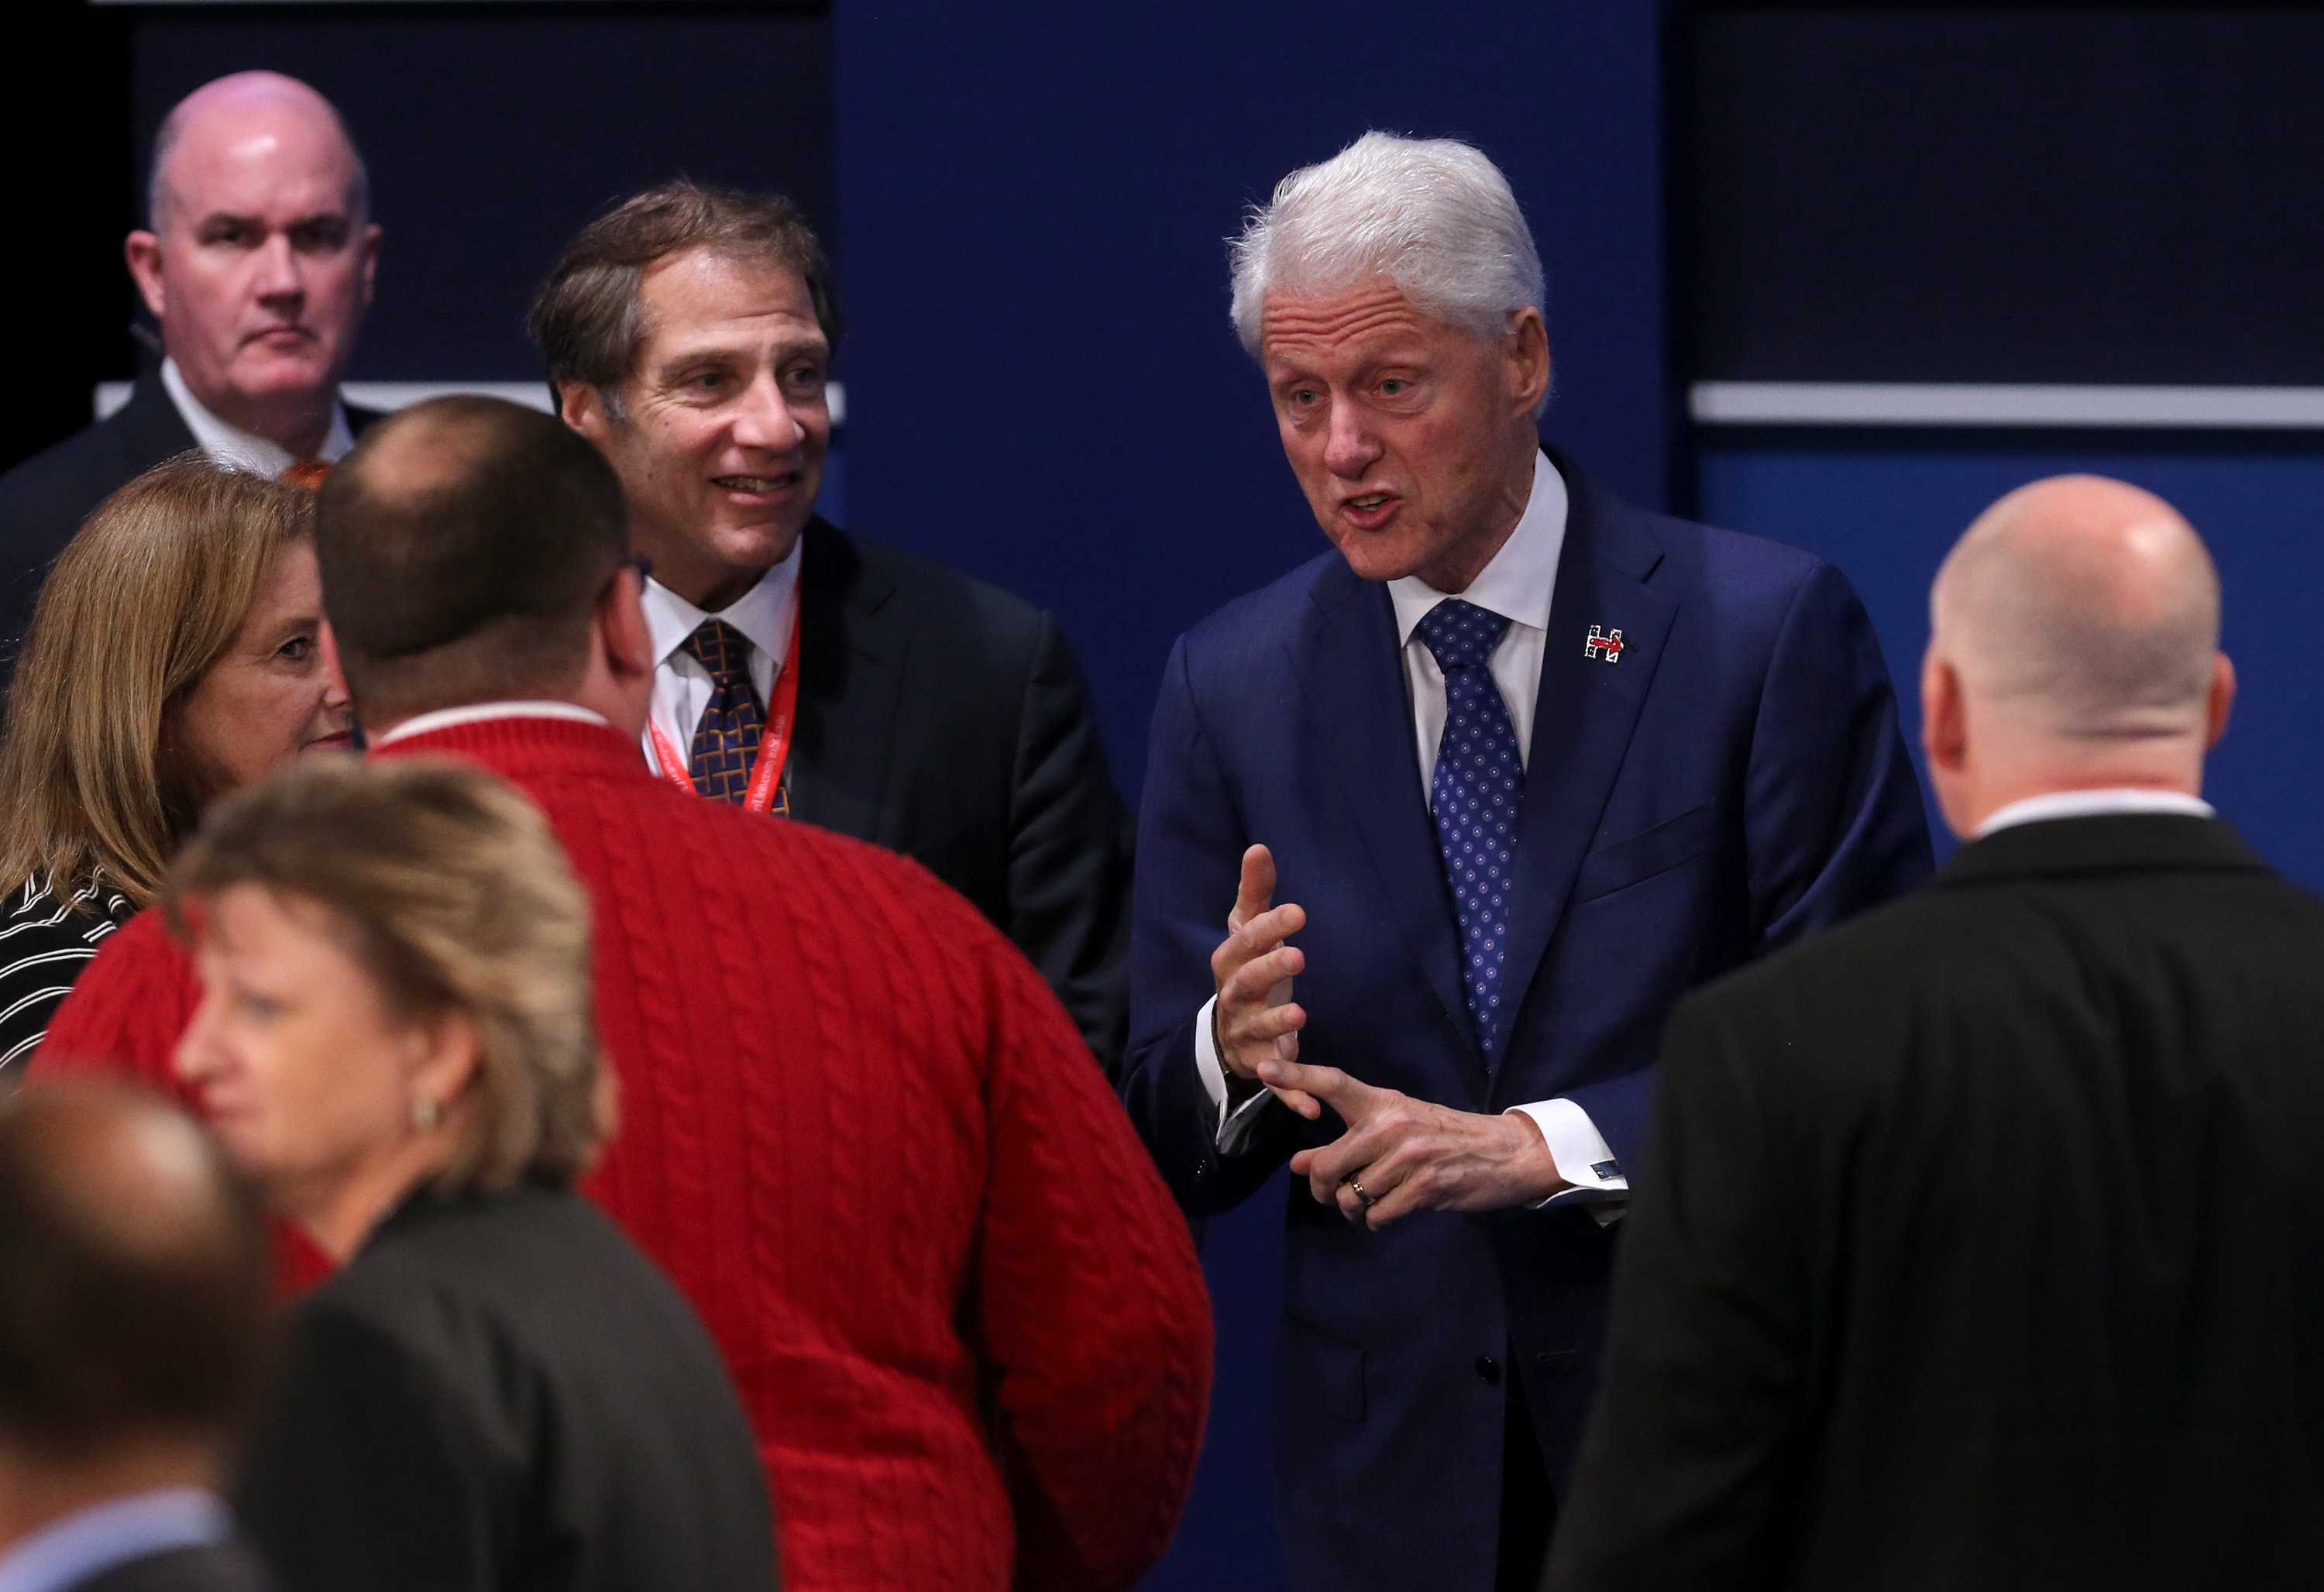 Former President Bill Clinton talks with Ken Bone after the second debate between the Republican and Democratic presidential candidates on Sunday, Oct. 9, 2016 at Washington University in St. Louis, Mo. (Christian Gooden/St. Louis Post-Dispatch/TNS)